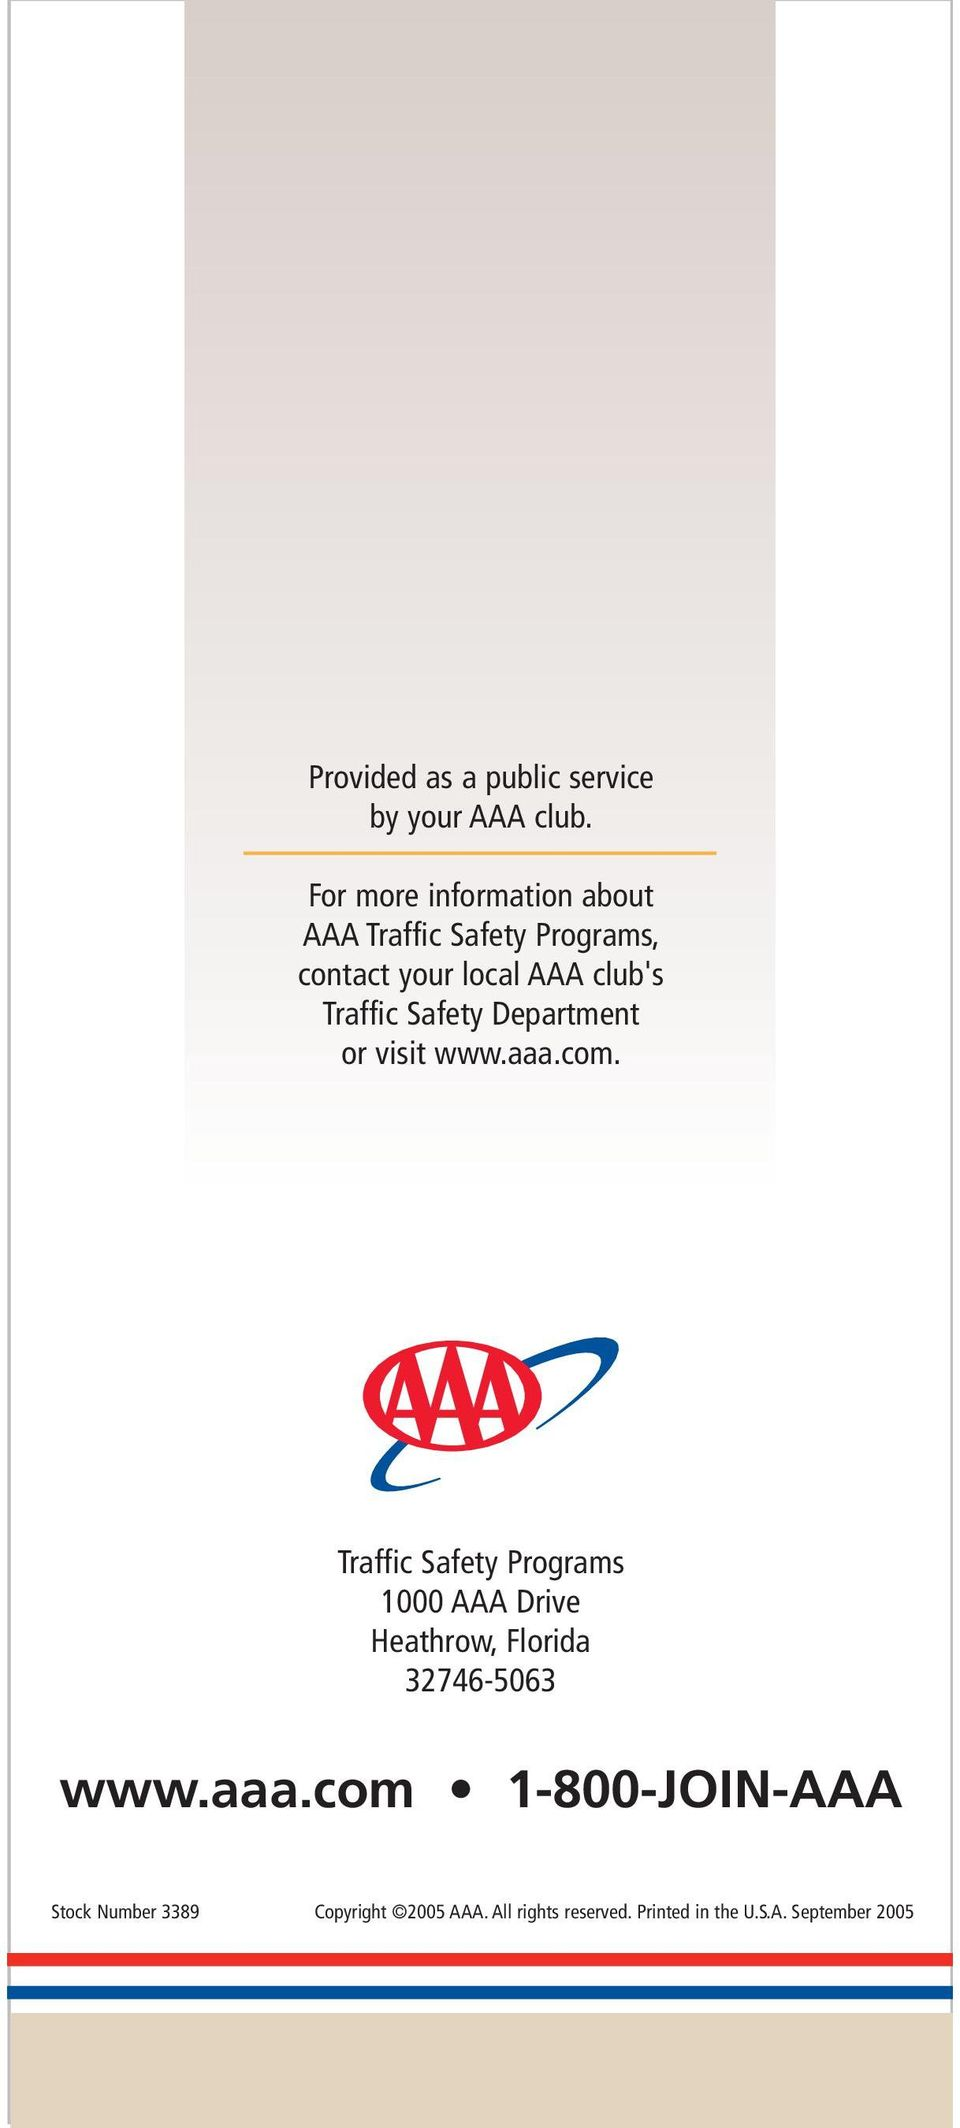 Traffic Safety Department or visit www.aaa.com.